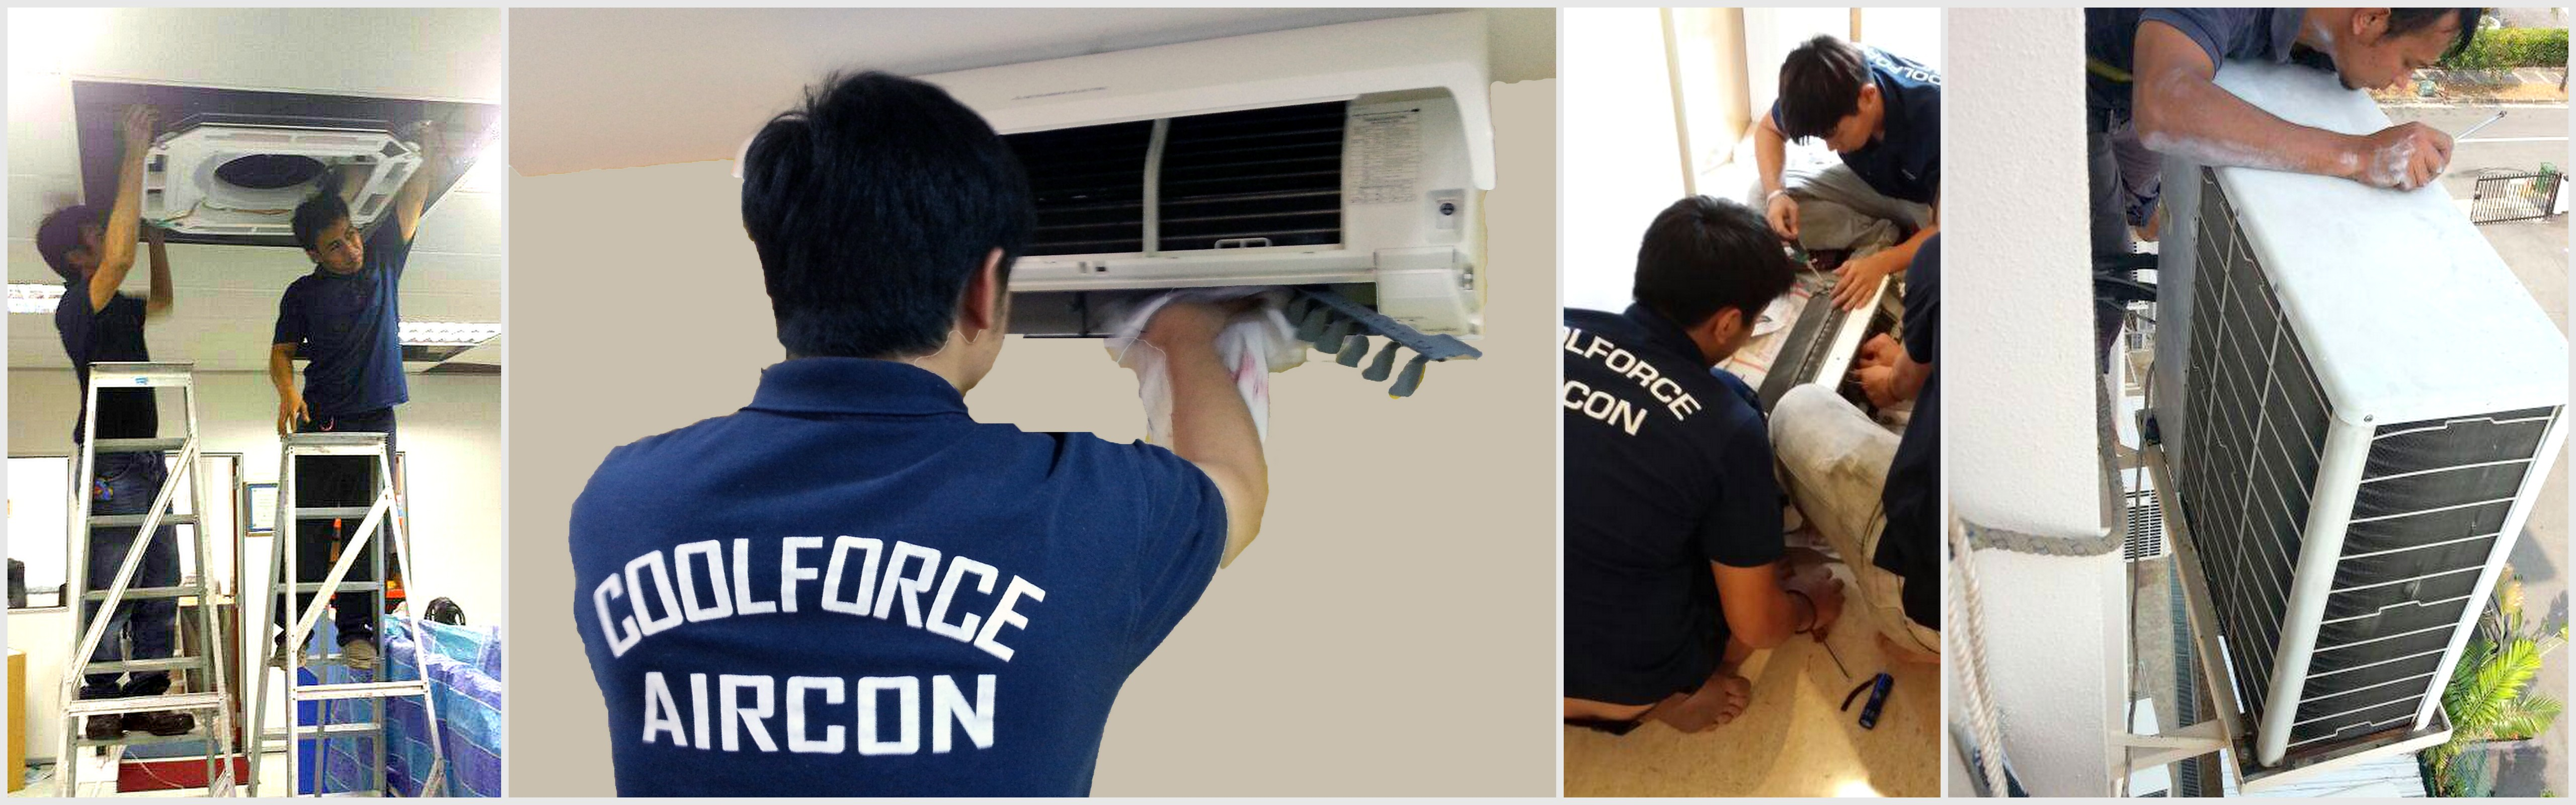 Coolforce Aircon Engineering, Singapore best aircon contractors